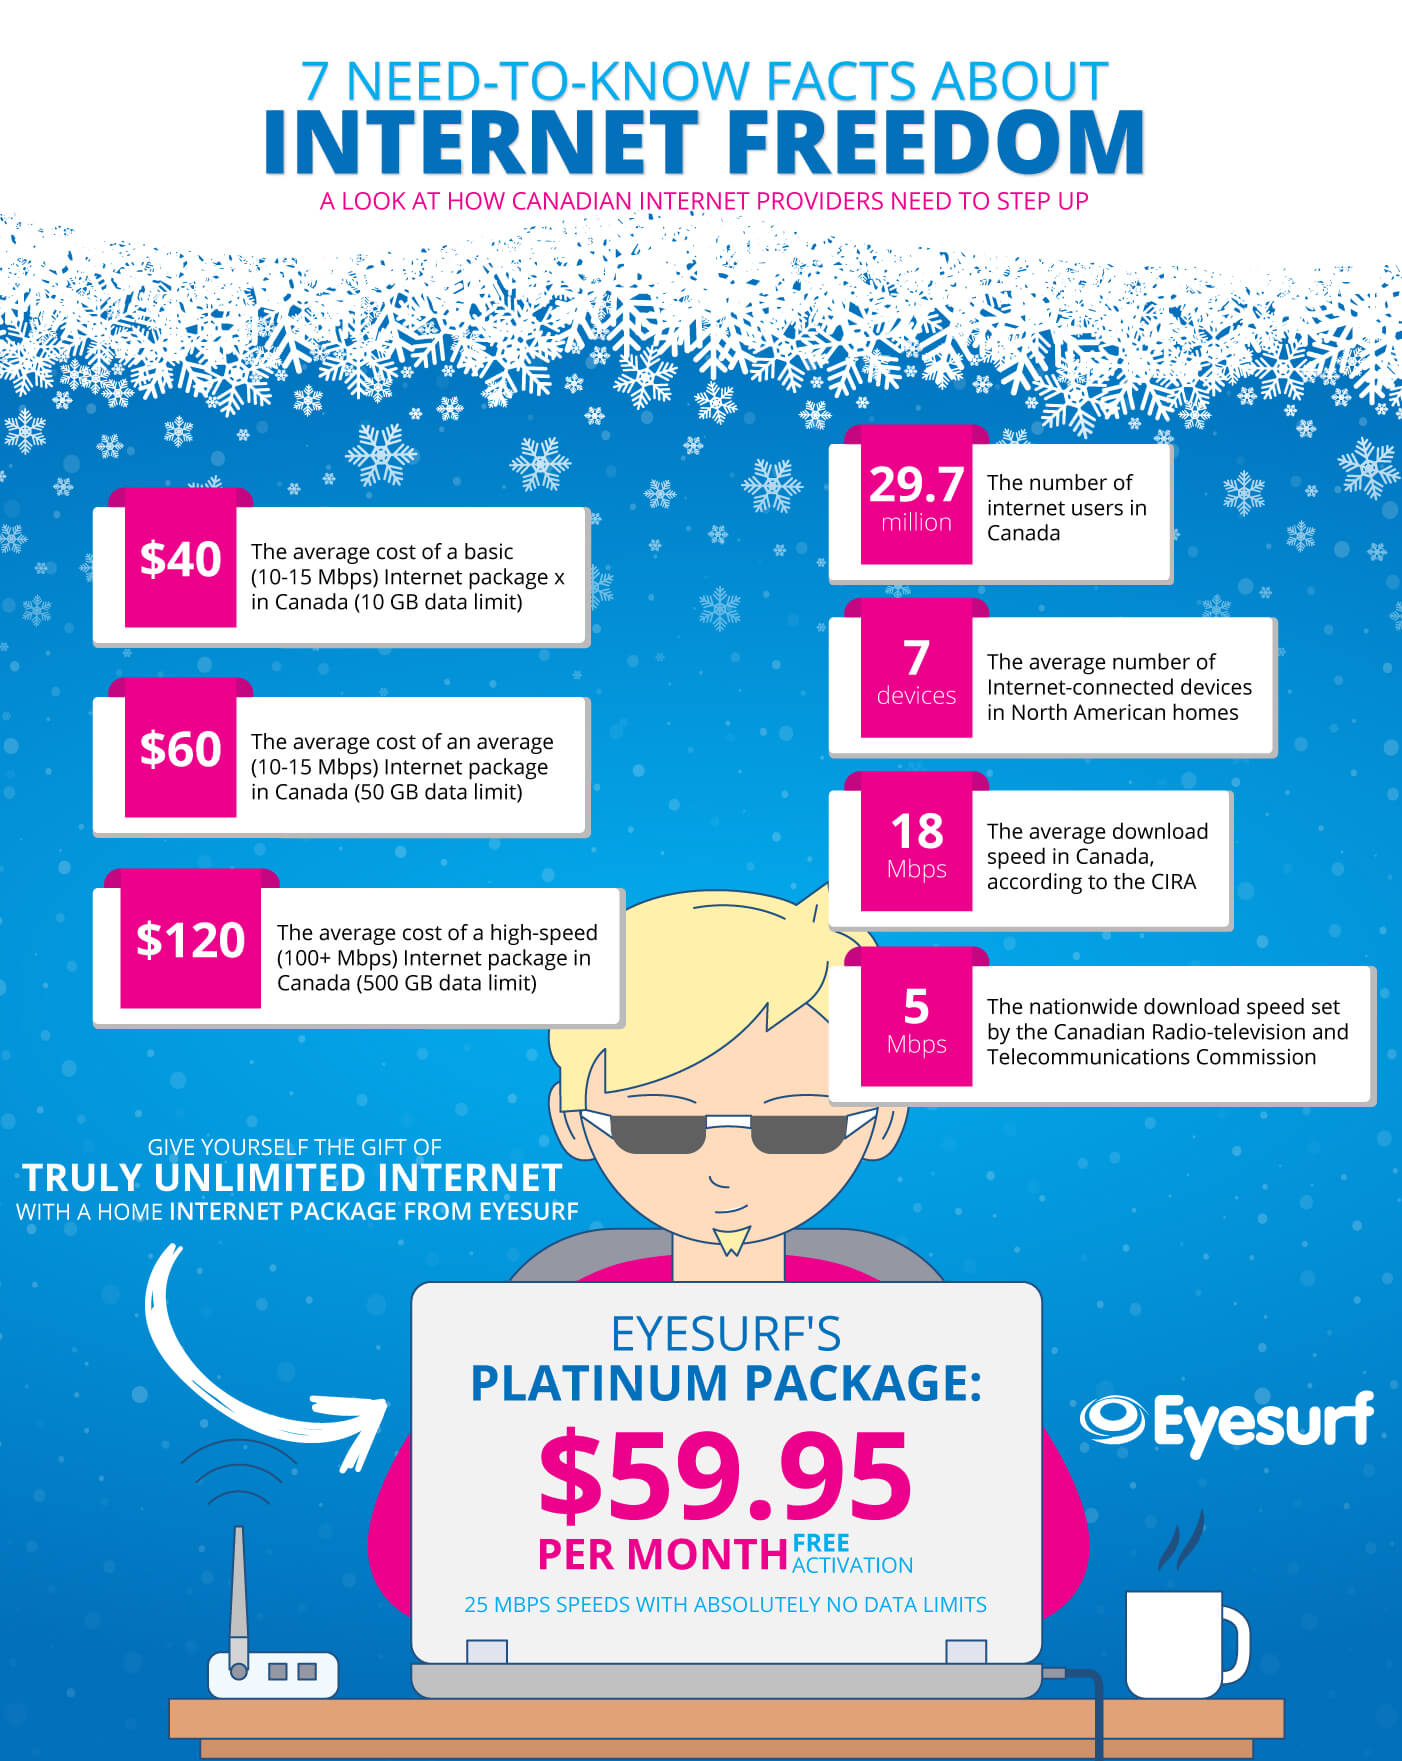 eyesurf-infographic-2